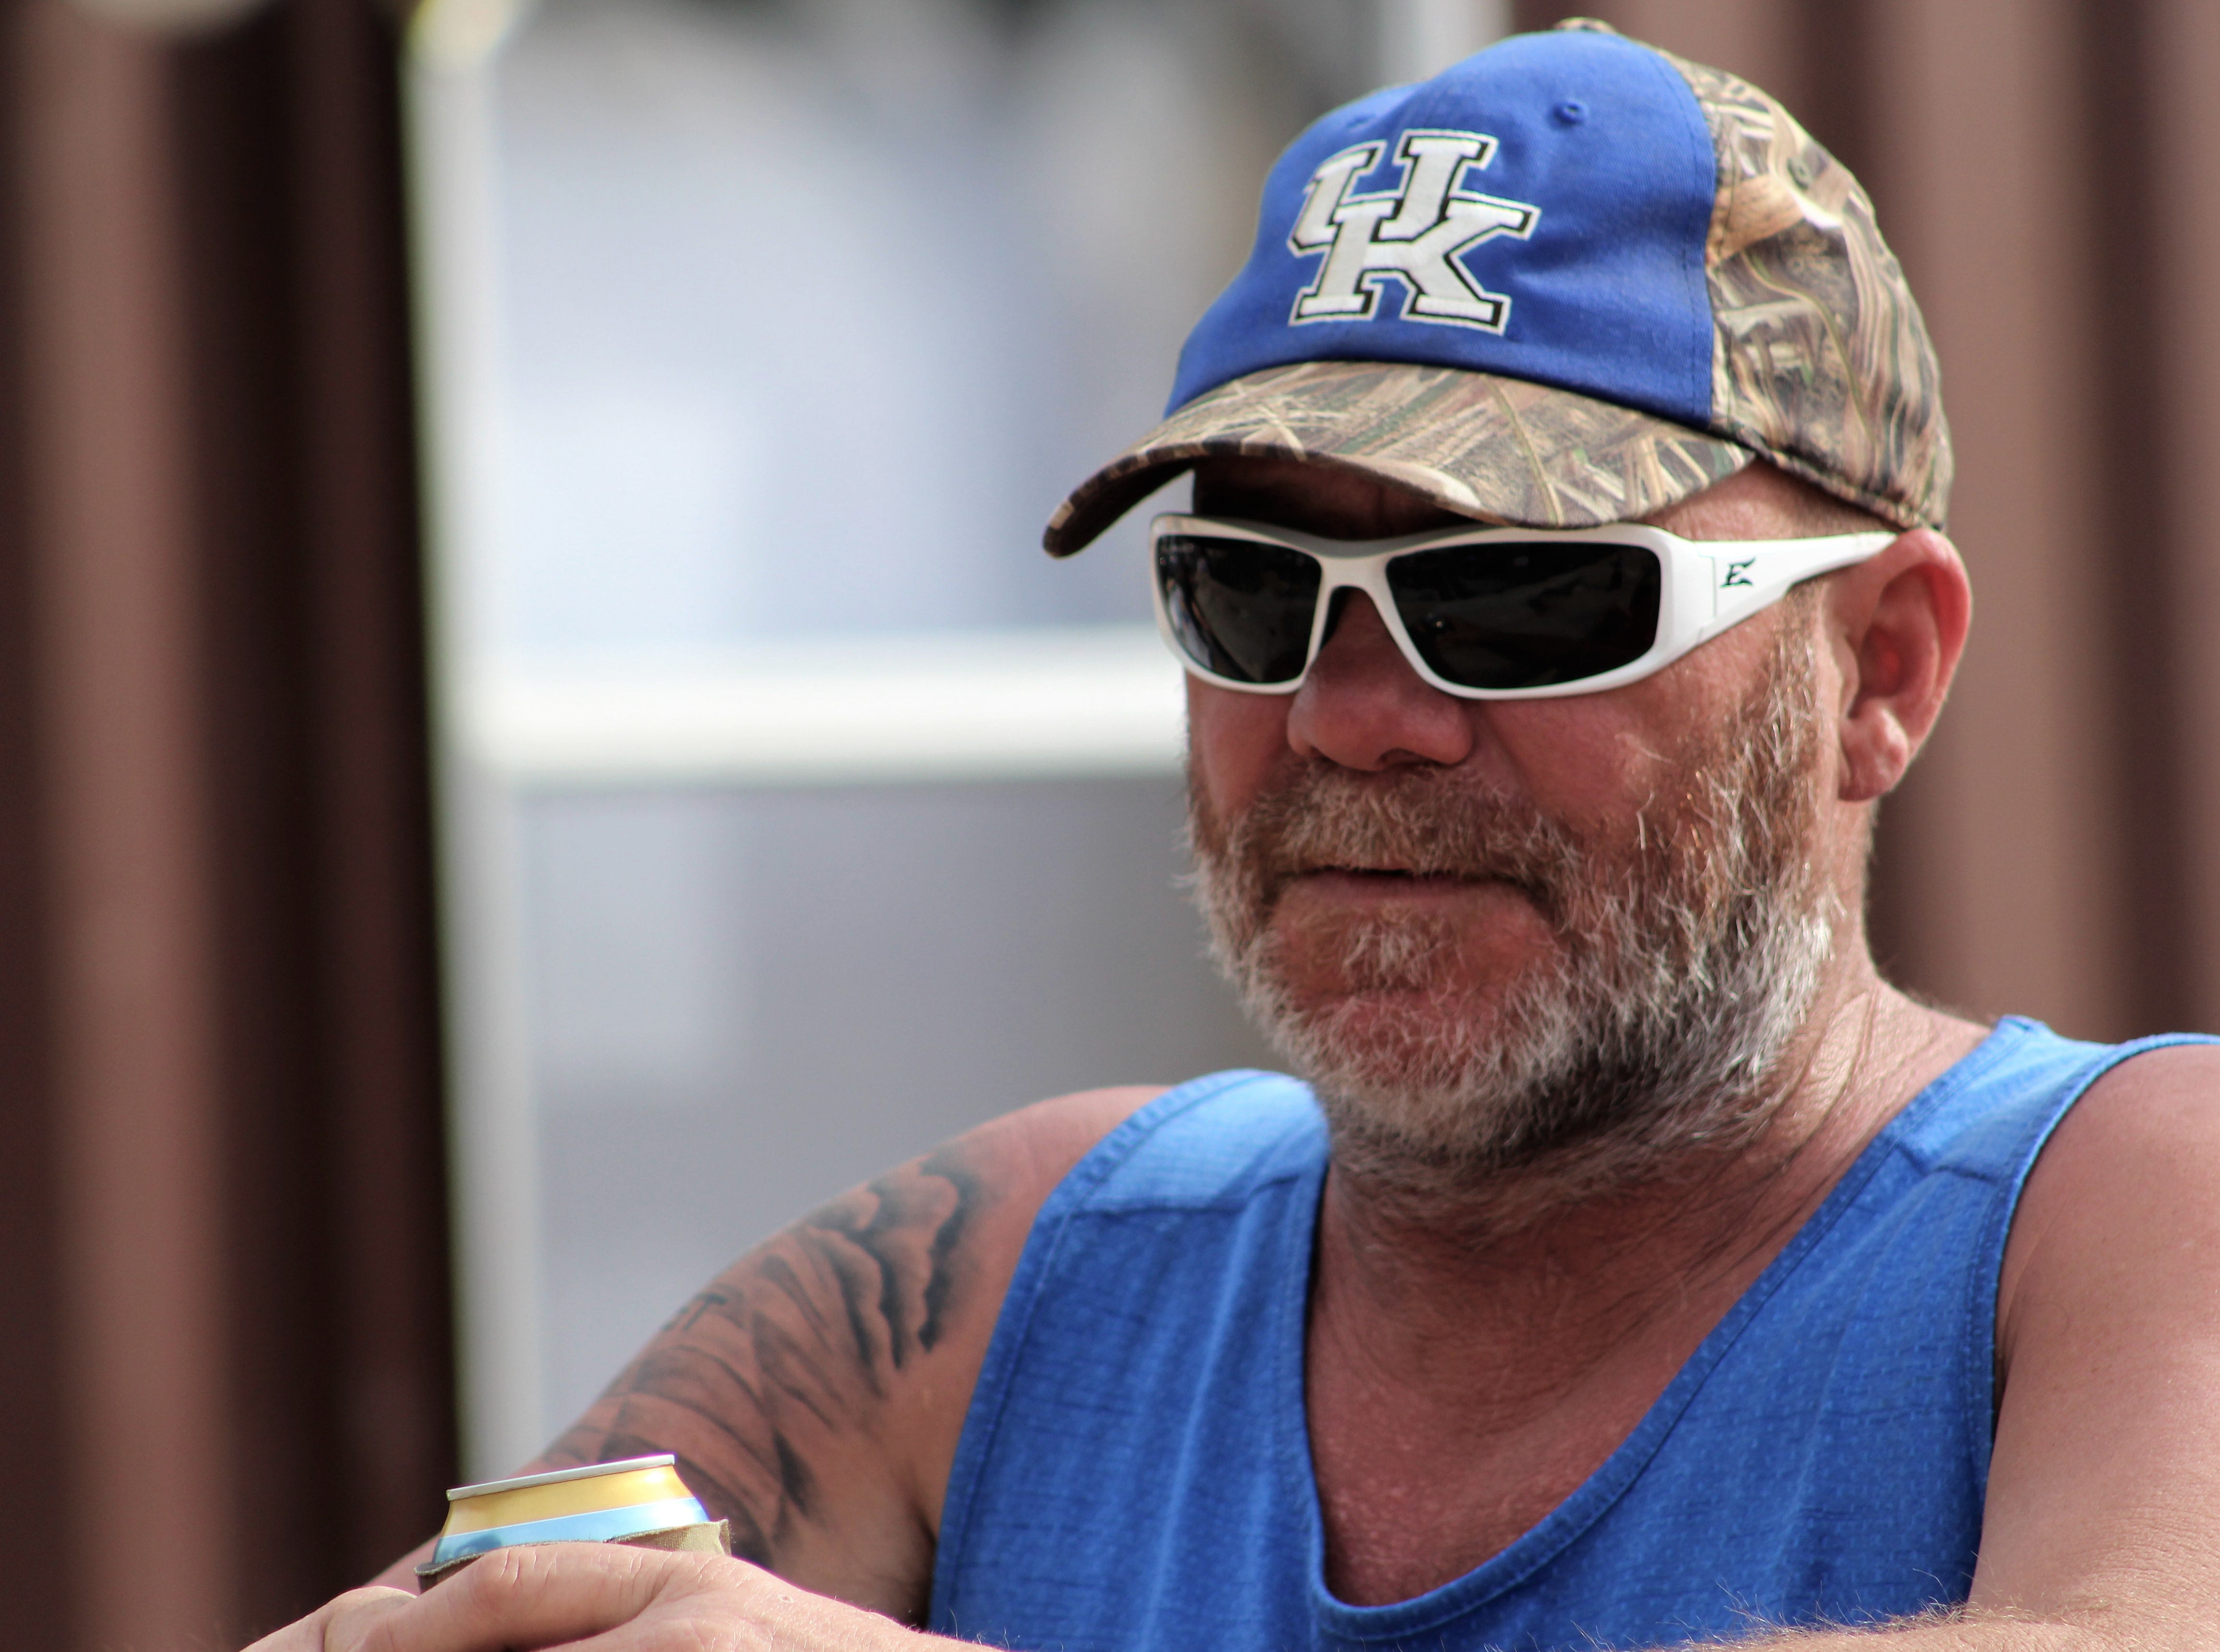 This guy was a fish out of water Saturday afternoon March 23, 2019, at the 9th Outlaws & Legends Music Festival. A Kentucky fan, he said he got ribbed because his Wildcats beat Abilene Christian's Wildcats in the NCAA Tournament.